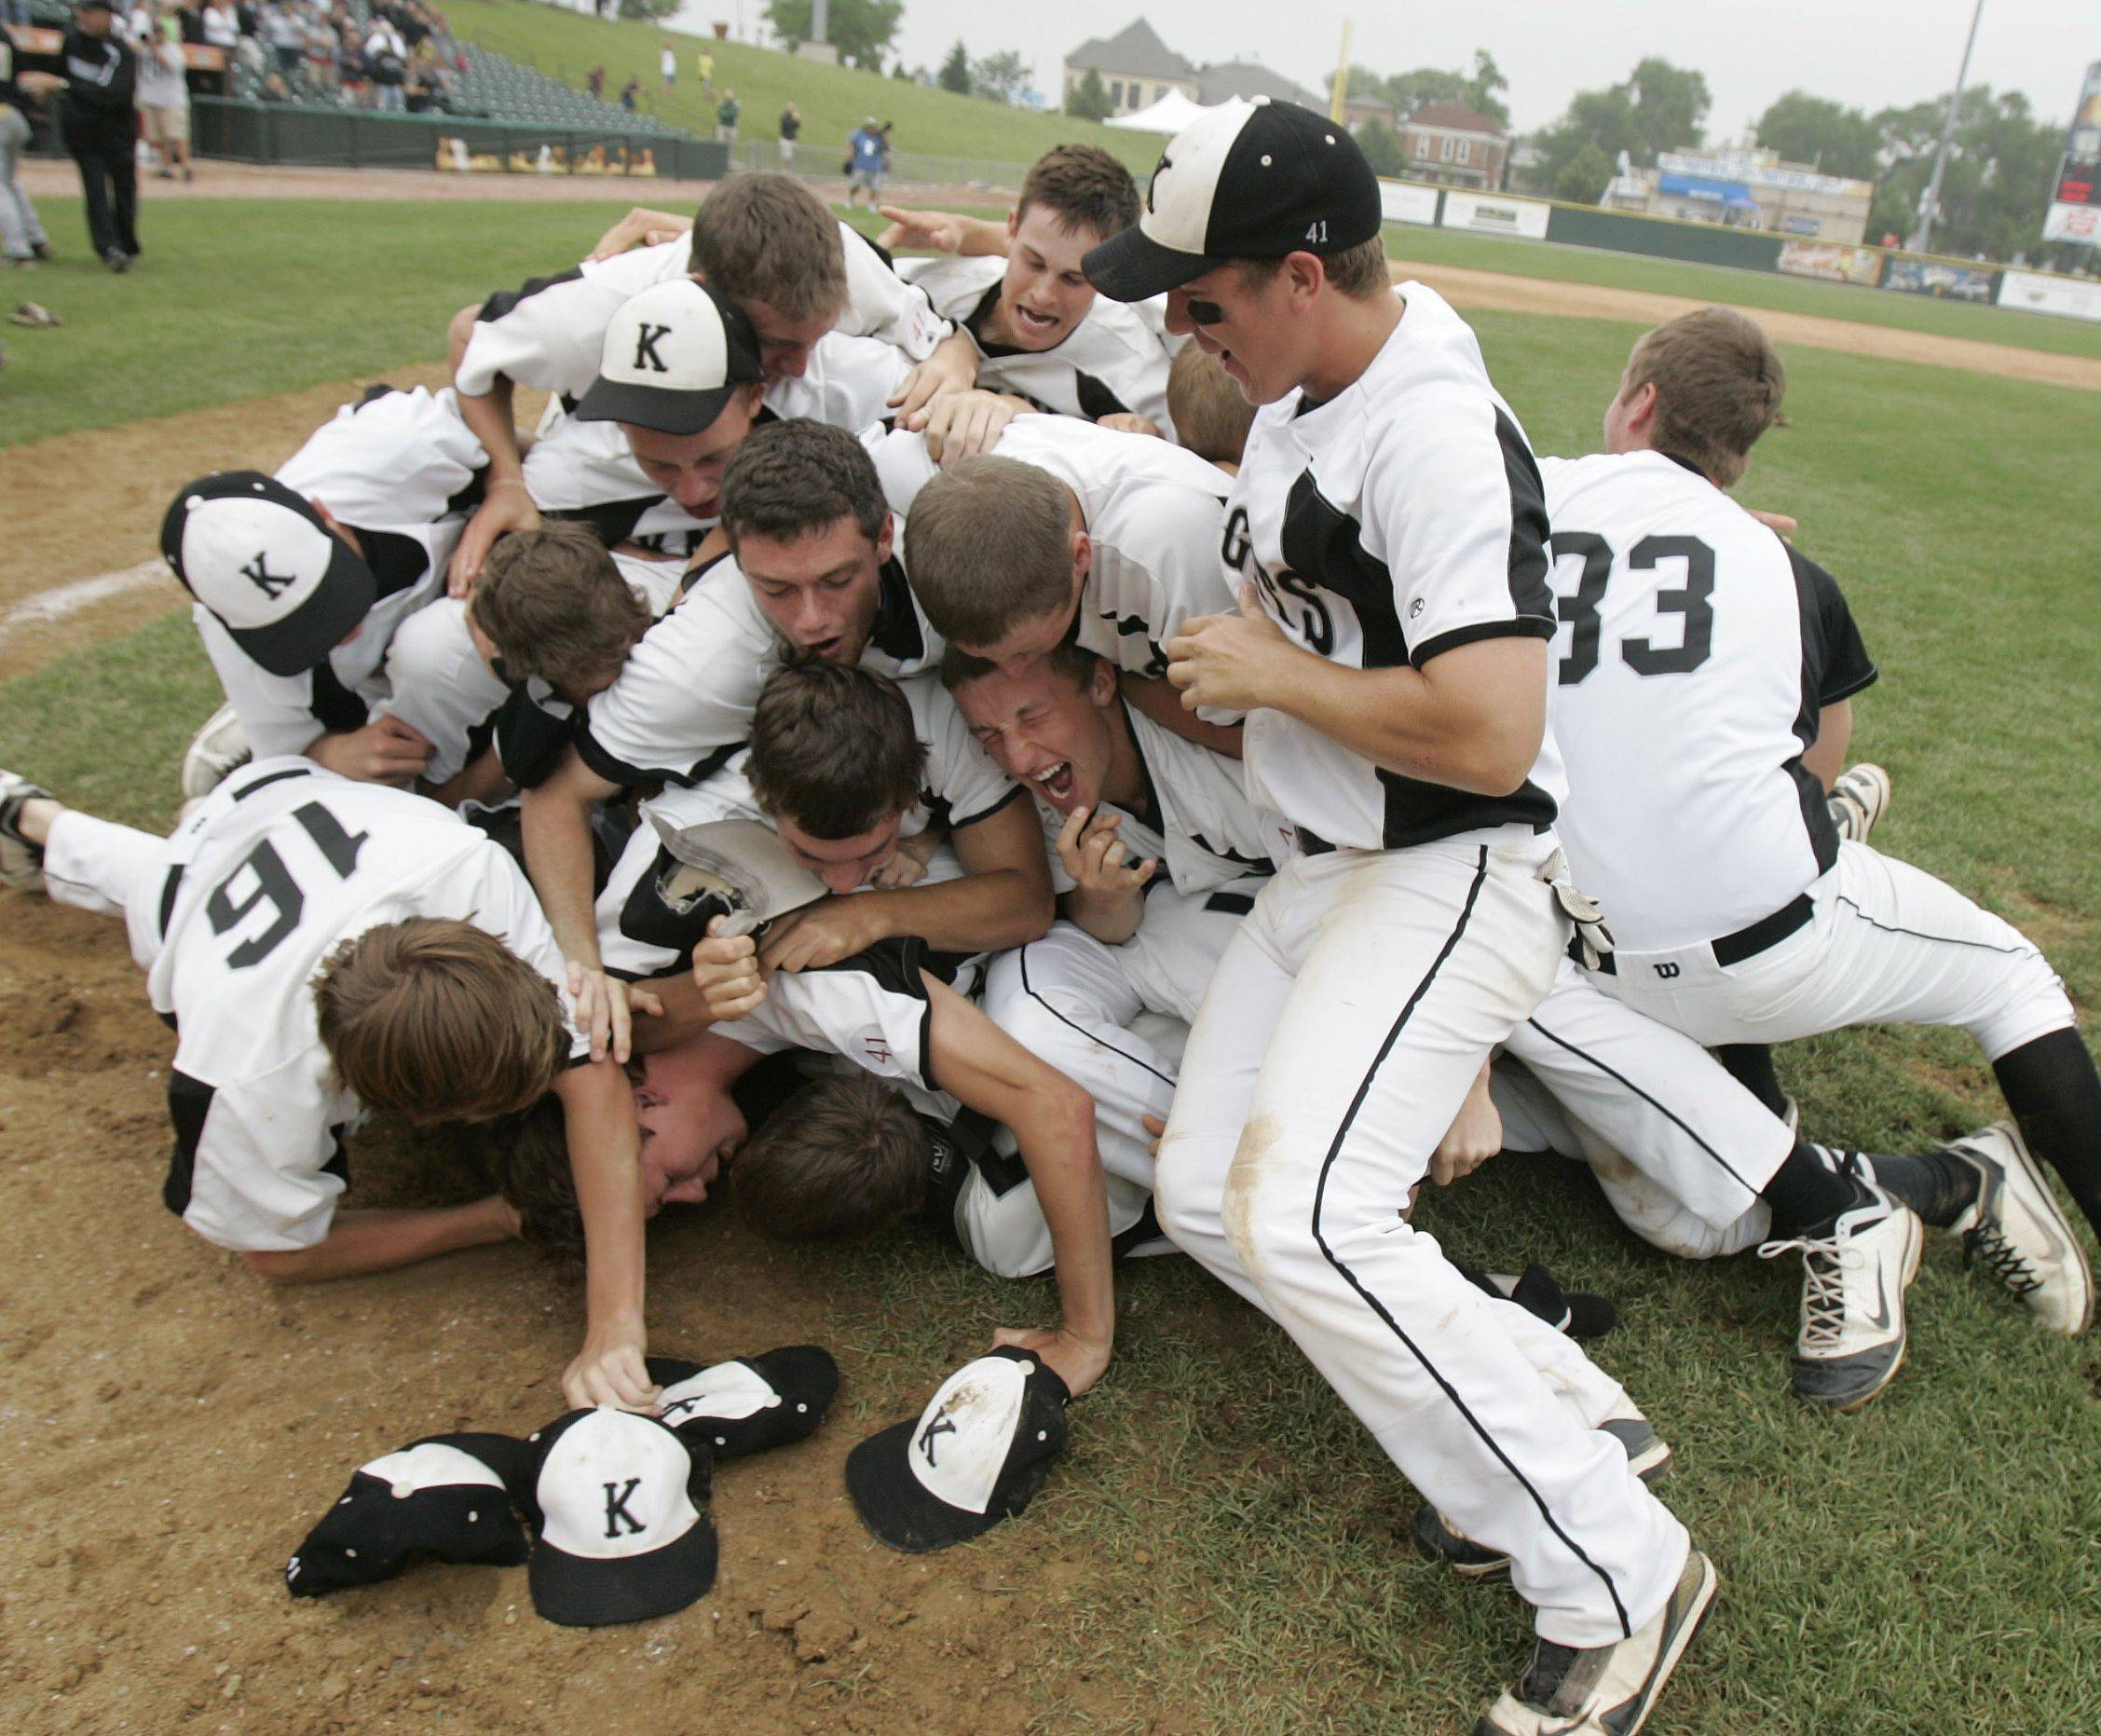 Kaneland players pile on each other after defeating Oak Forest 11-3 in the Class 3A state championship game at Silver Cross Field in Joliet on Saturday.